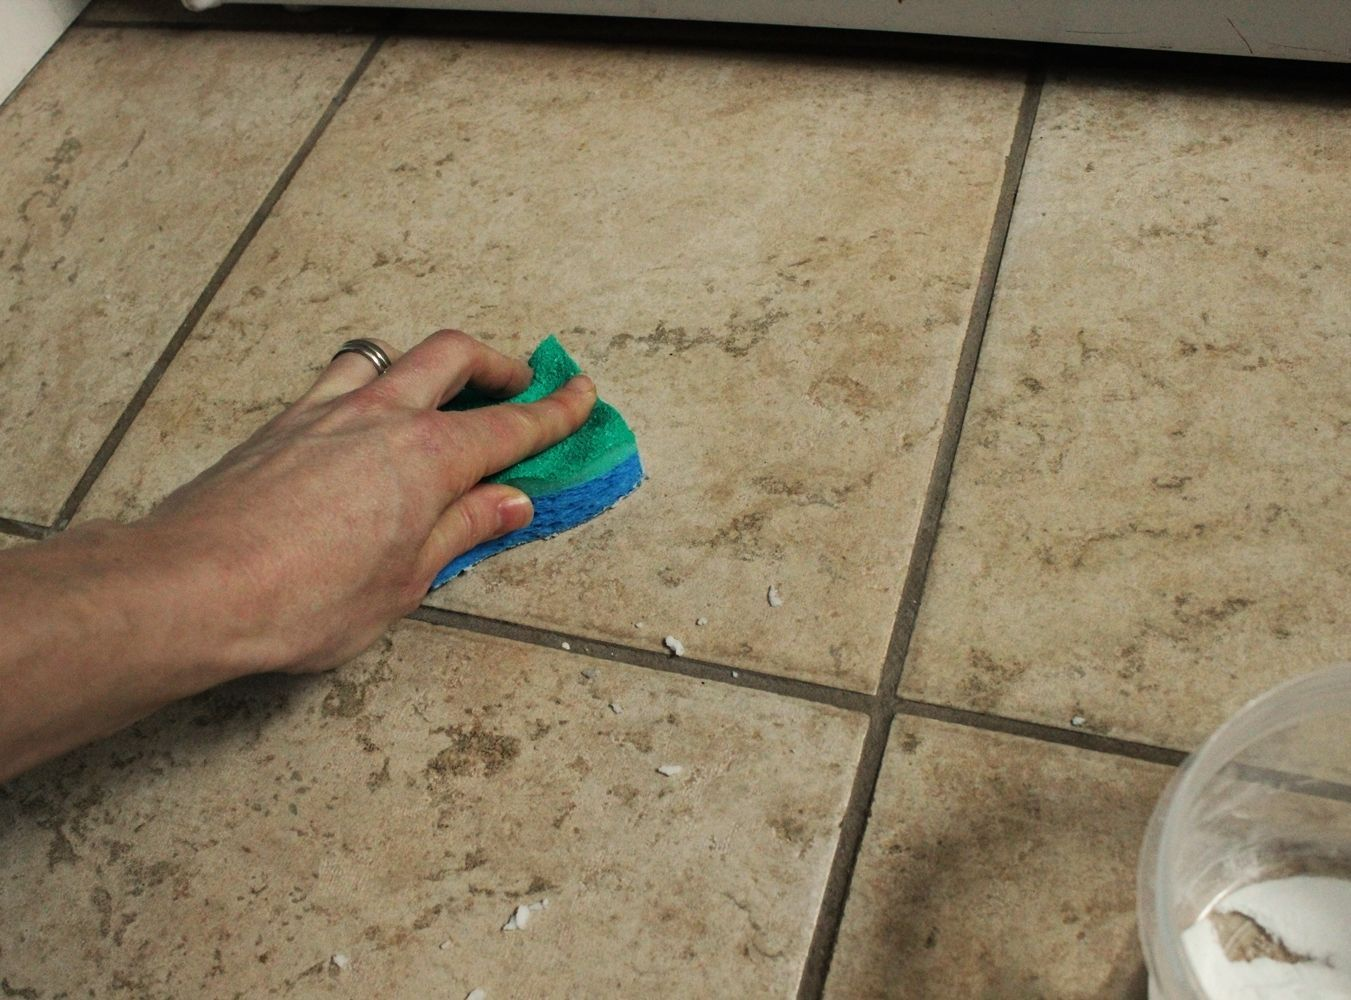 How to clean floor tile grout naturally flooring ideas and inspiration diy natural tile or grout cleaner dailygadgetfo Gallery